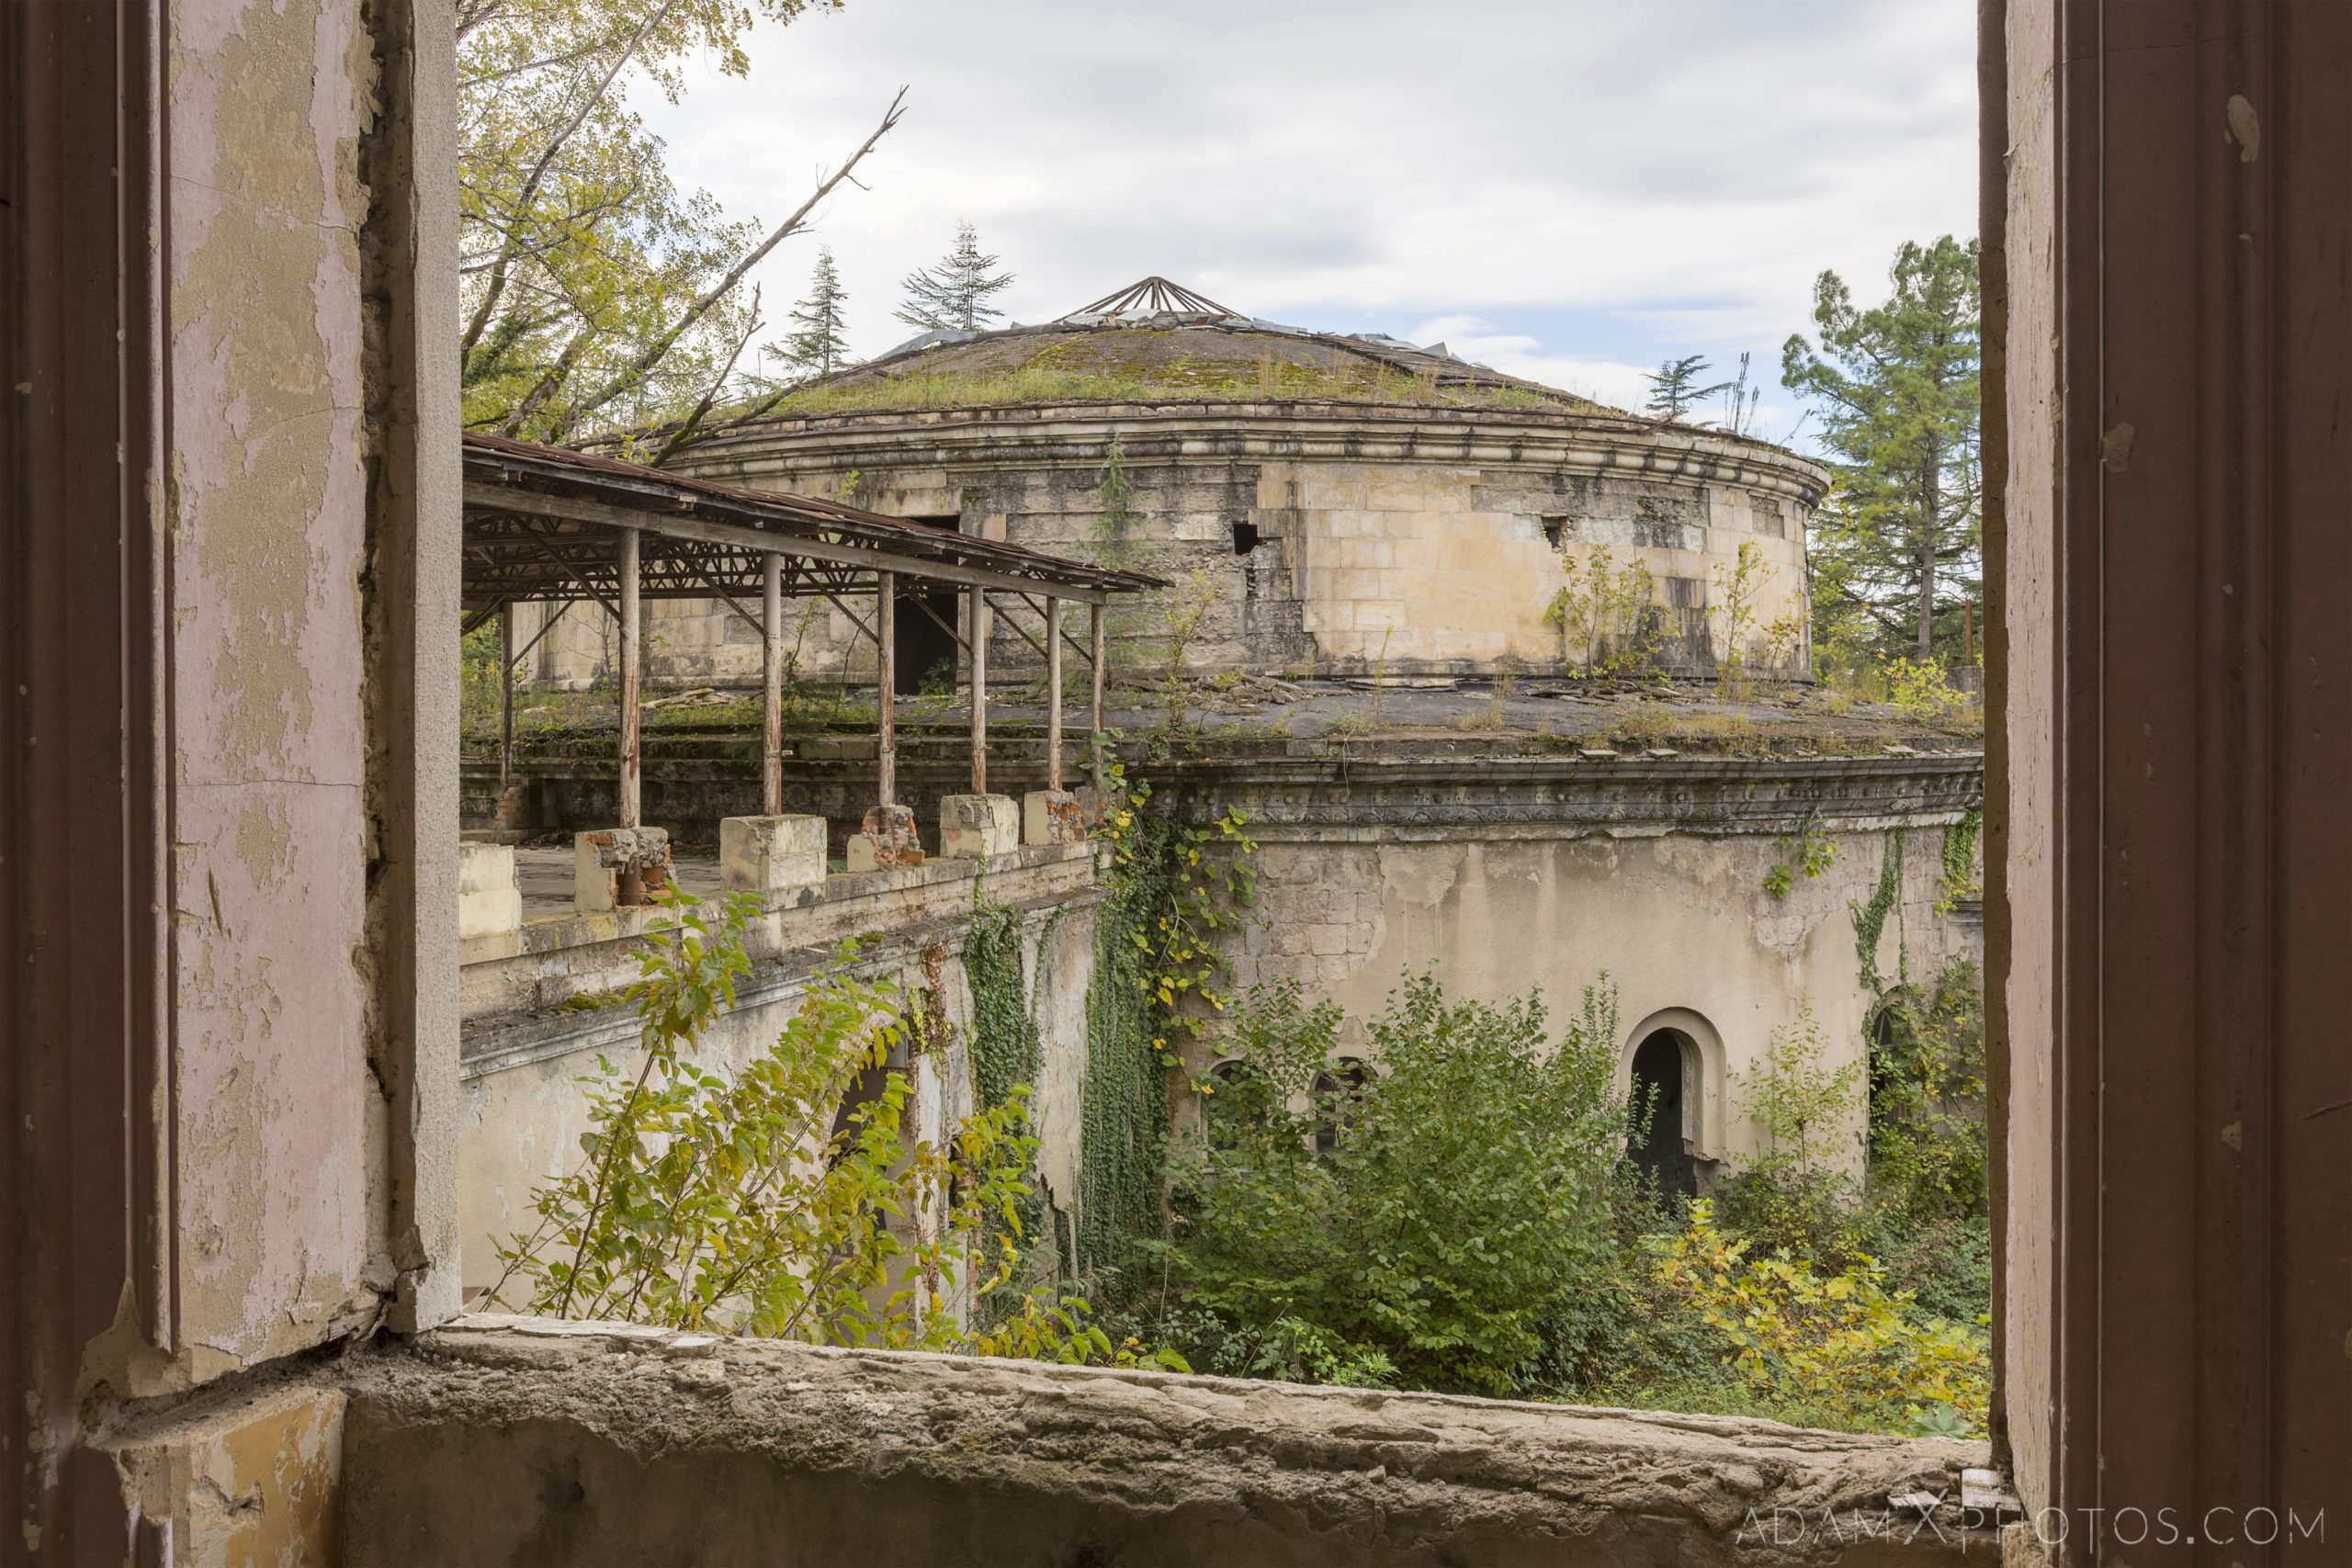 view of the bath house Sanatorium Imereti Tskaltubo Georgia Soviet era Adam X Urbex Urban Exploration 2018 Abandoned Access History decay ruins lost forgotten derelict location creepy haunting eerie security